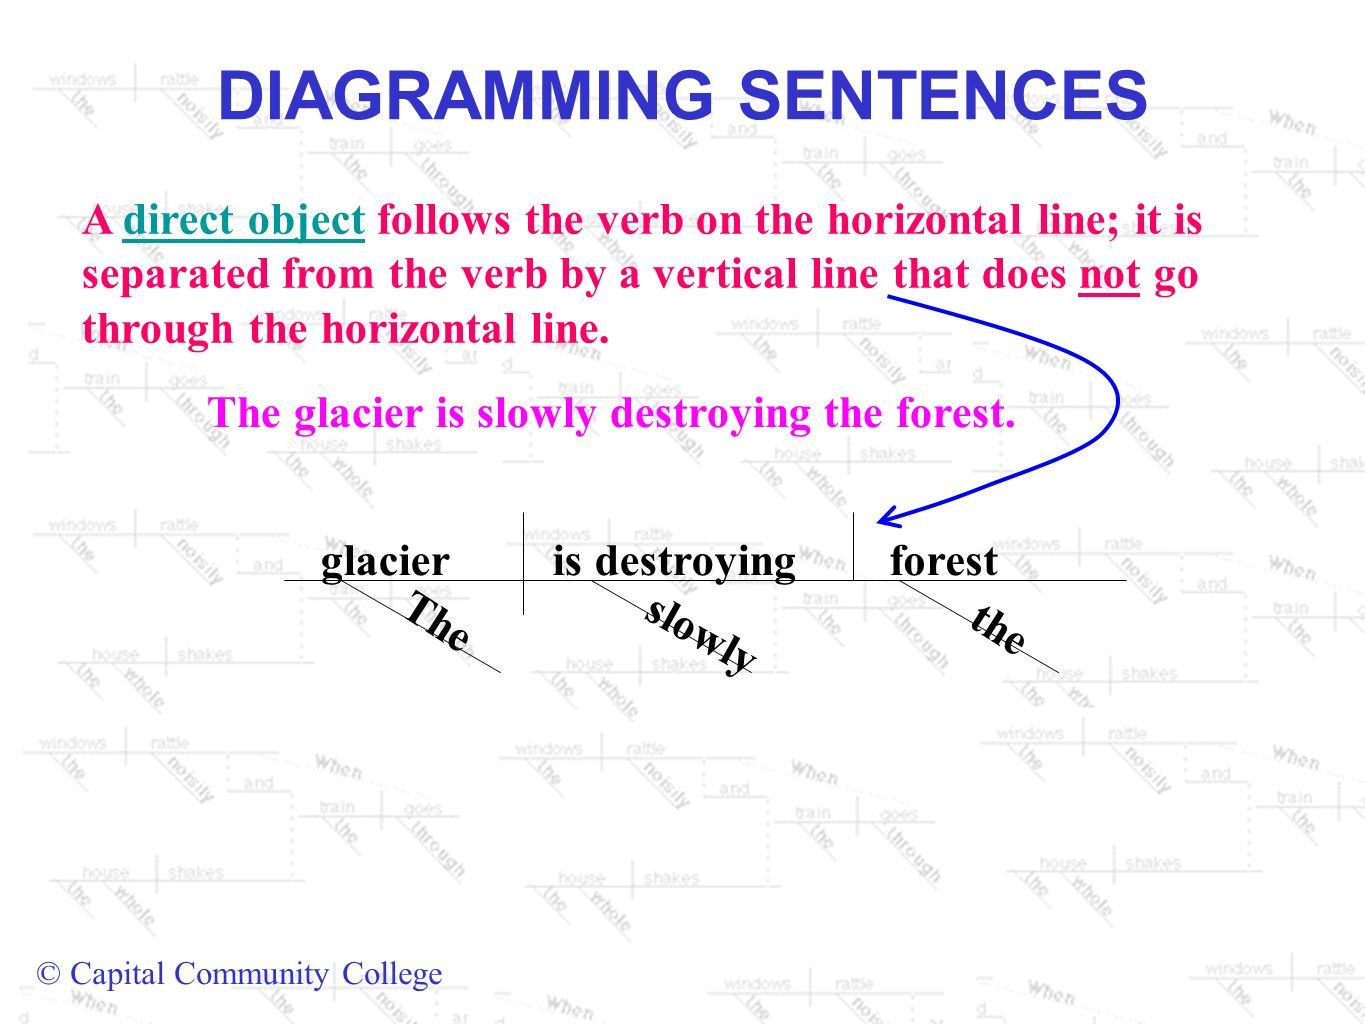 diagram my sentences vw polo mk4 radio wiring diagramming ppt video online download